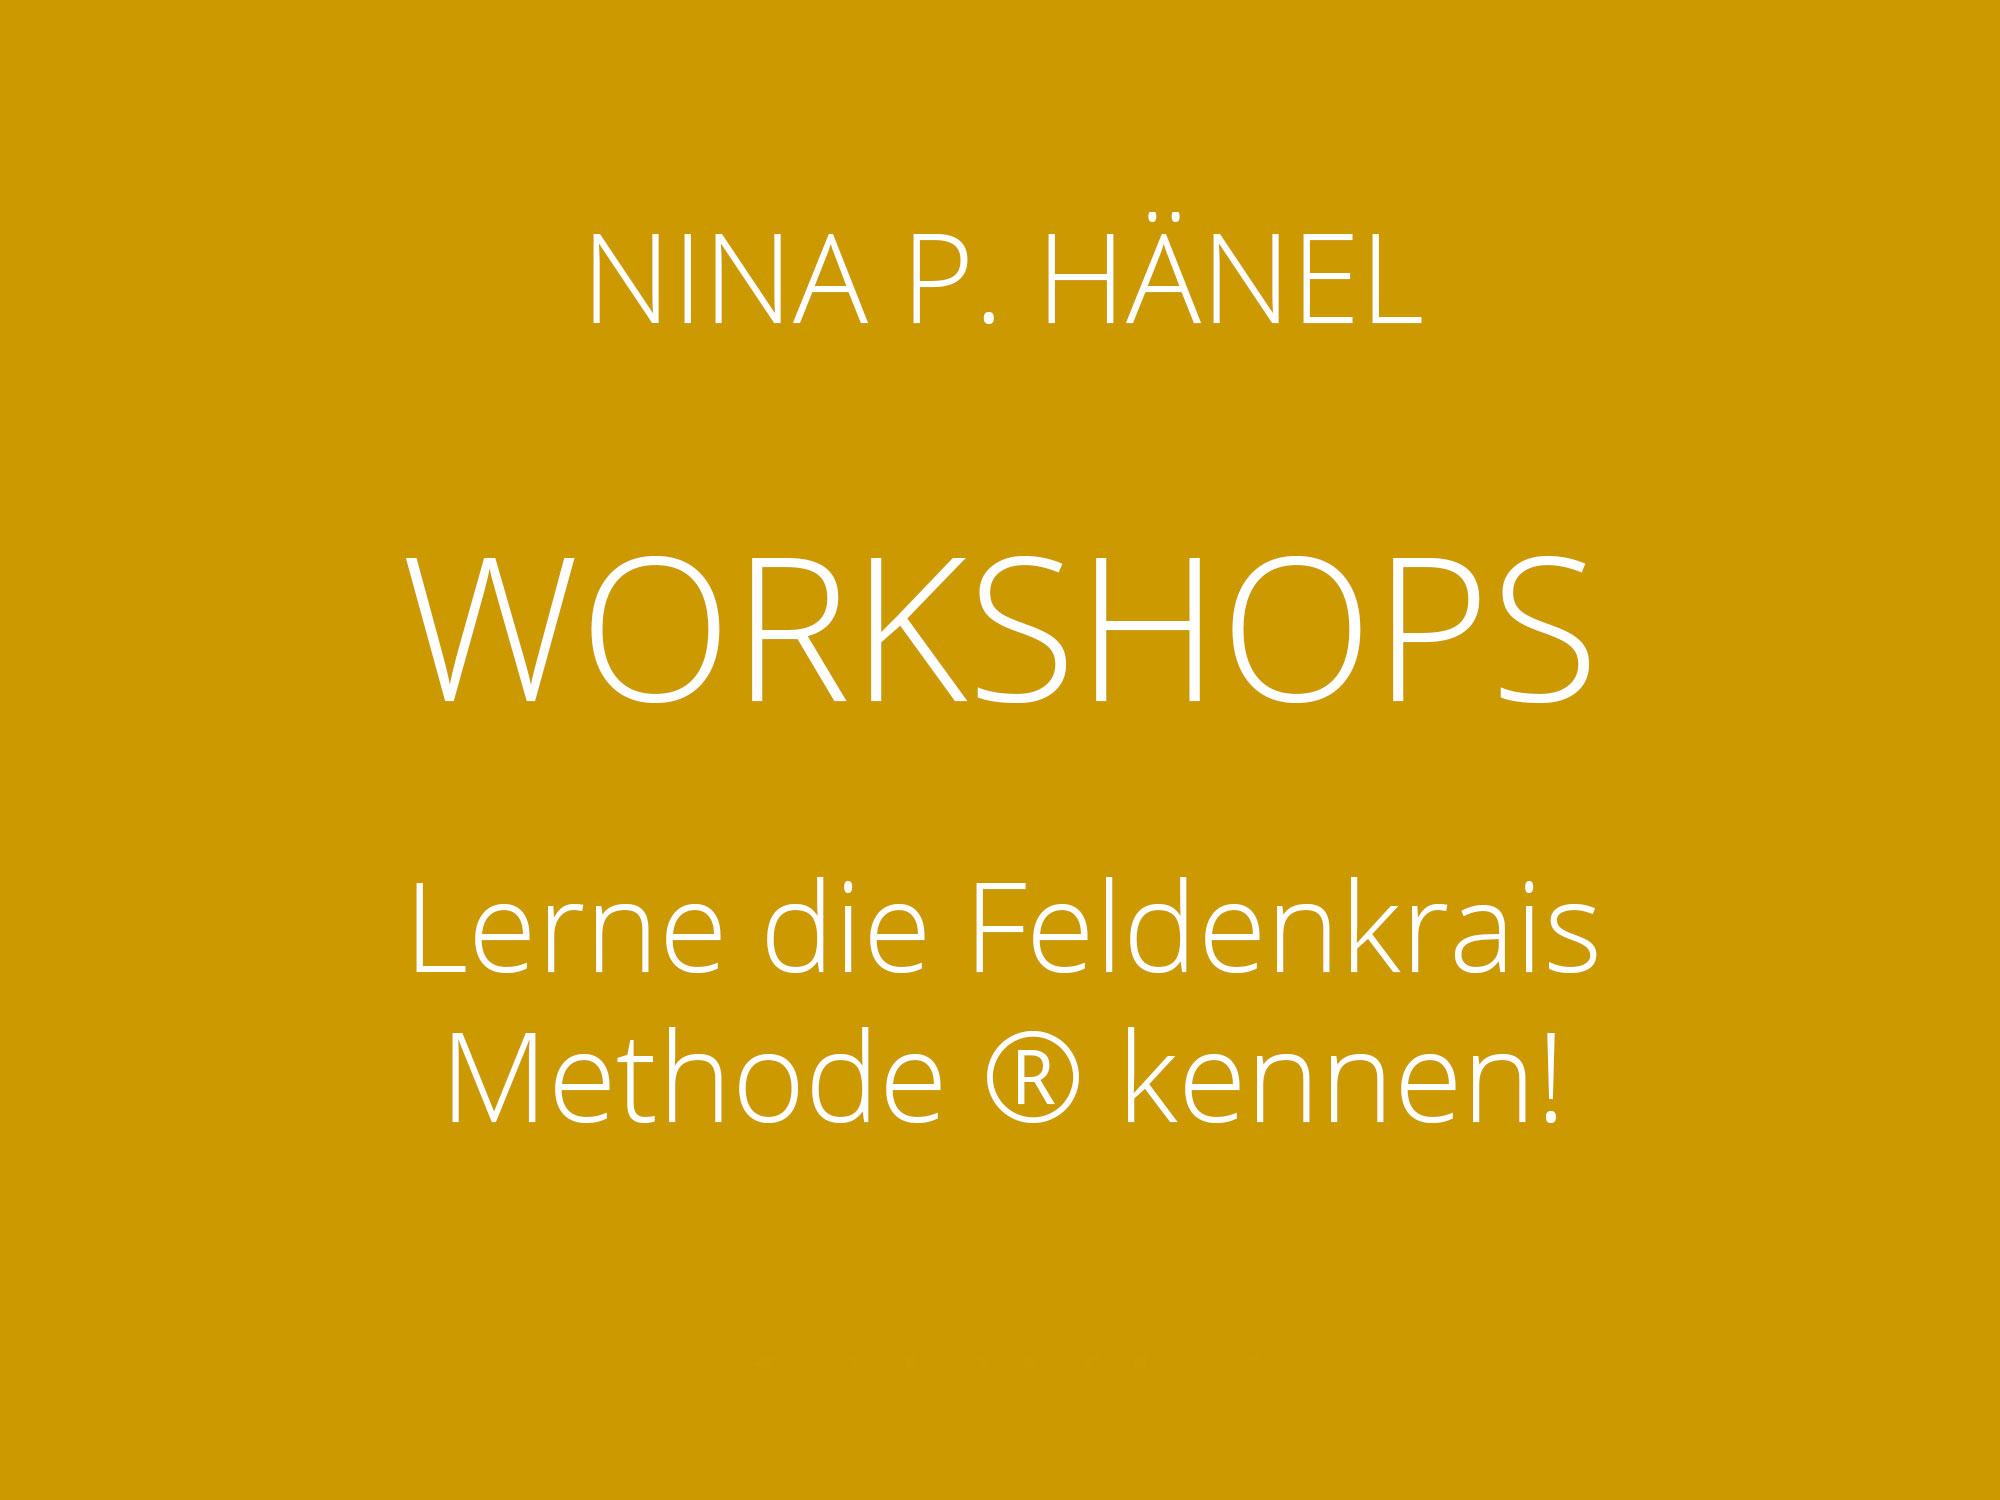 www.opencreativesenses.de_homedia_workshopnina2018